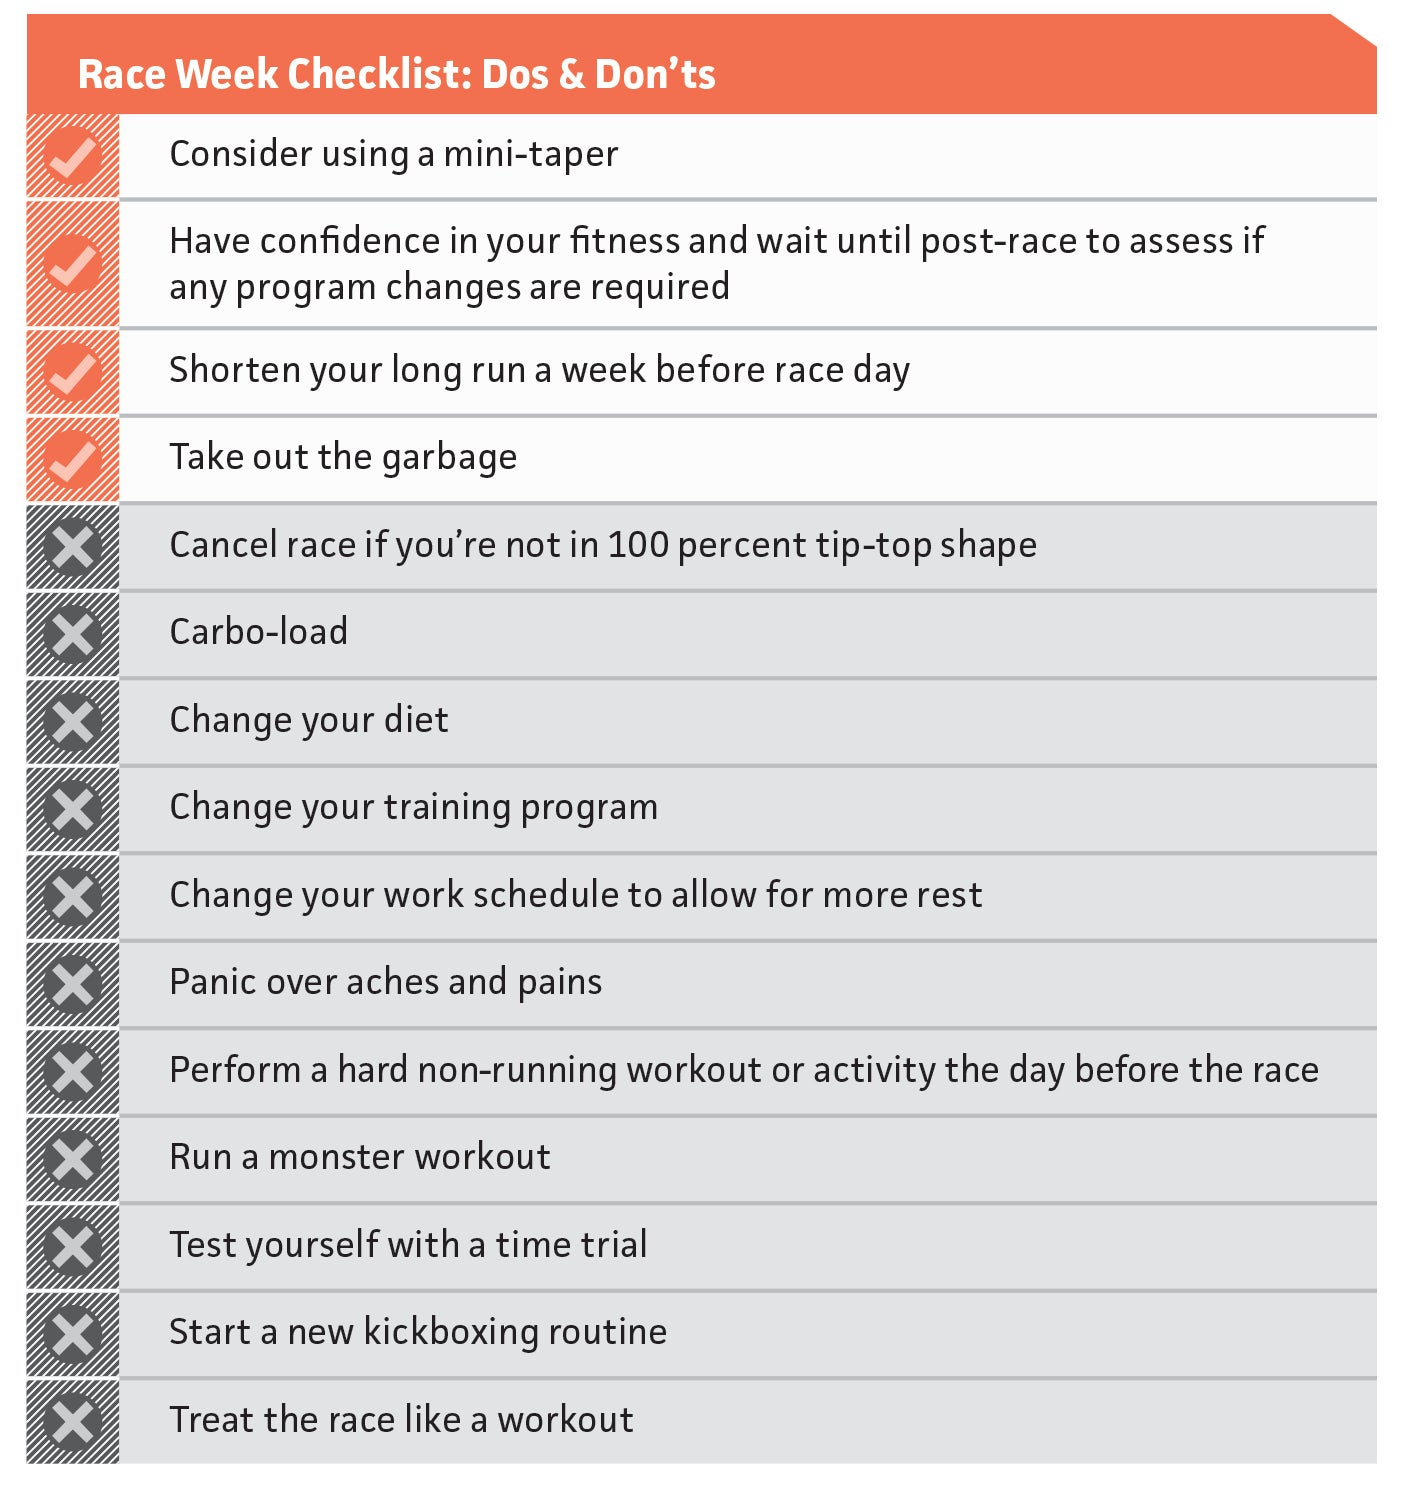 race week checklist dos and don'ts